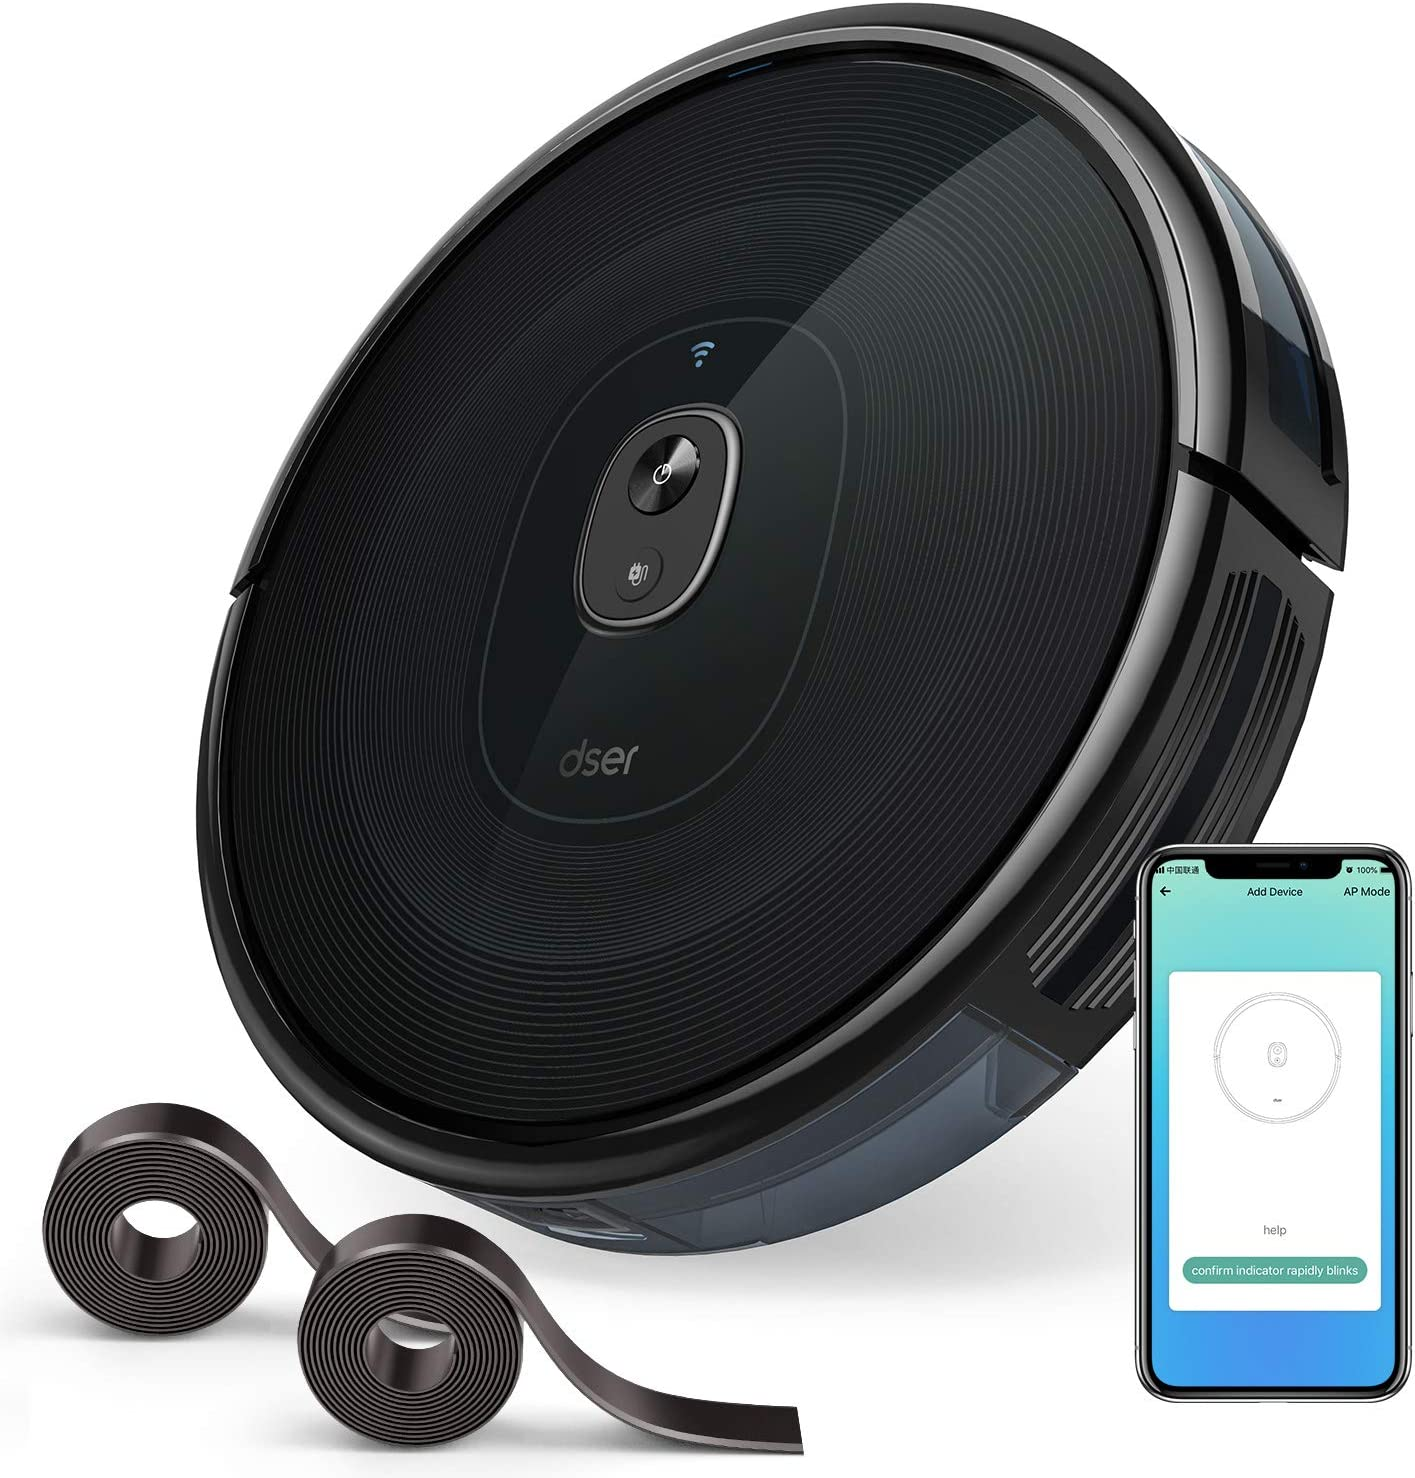 dser RoboGeek 21T, WiFi Robot Vacuum Cleaner with App and Remote Control, 1600Pa Max Suction, Quiet, Ultra-Slim Self-Charging Robotic Vacuums for House Floor and Pet Hair Cleaning, Alexa Voice Control